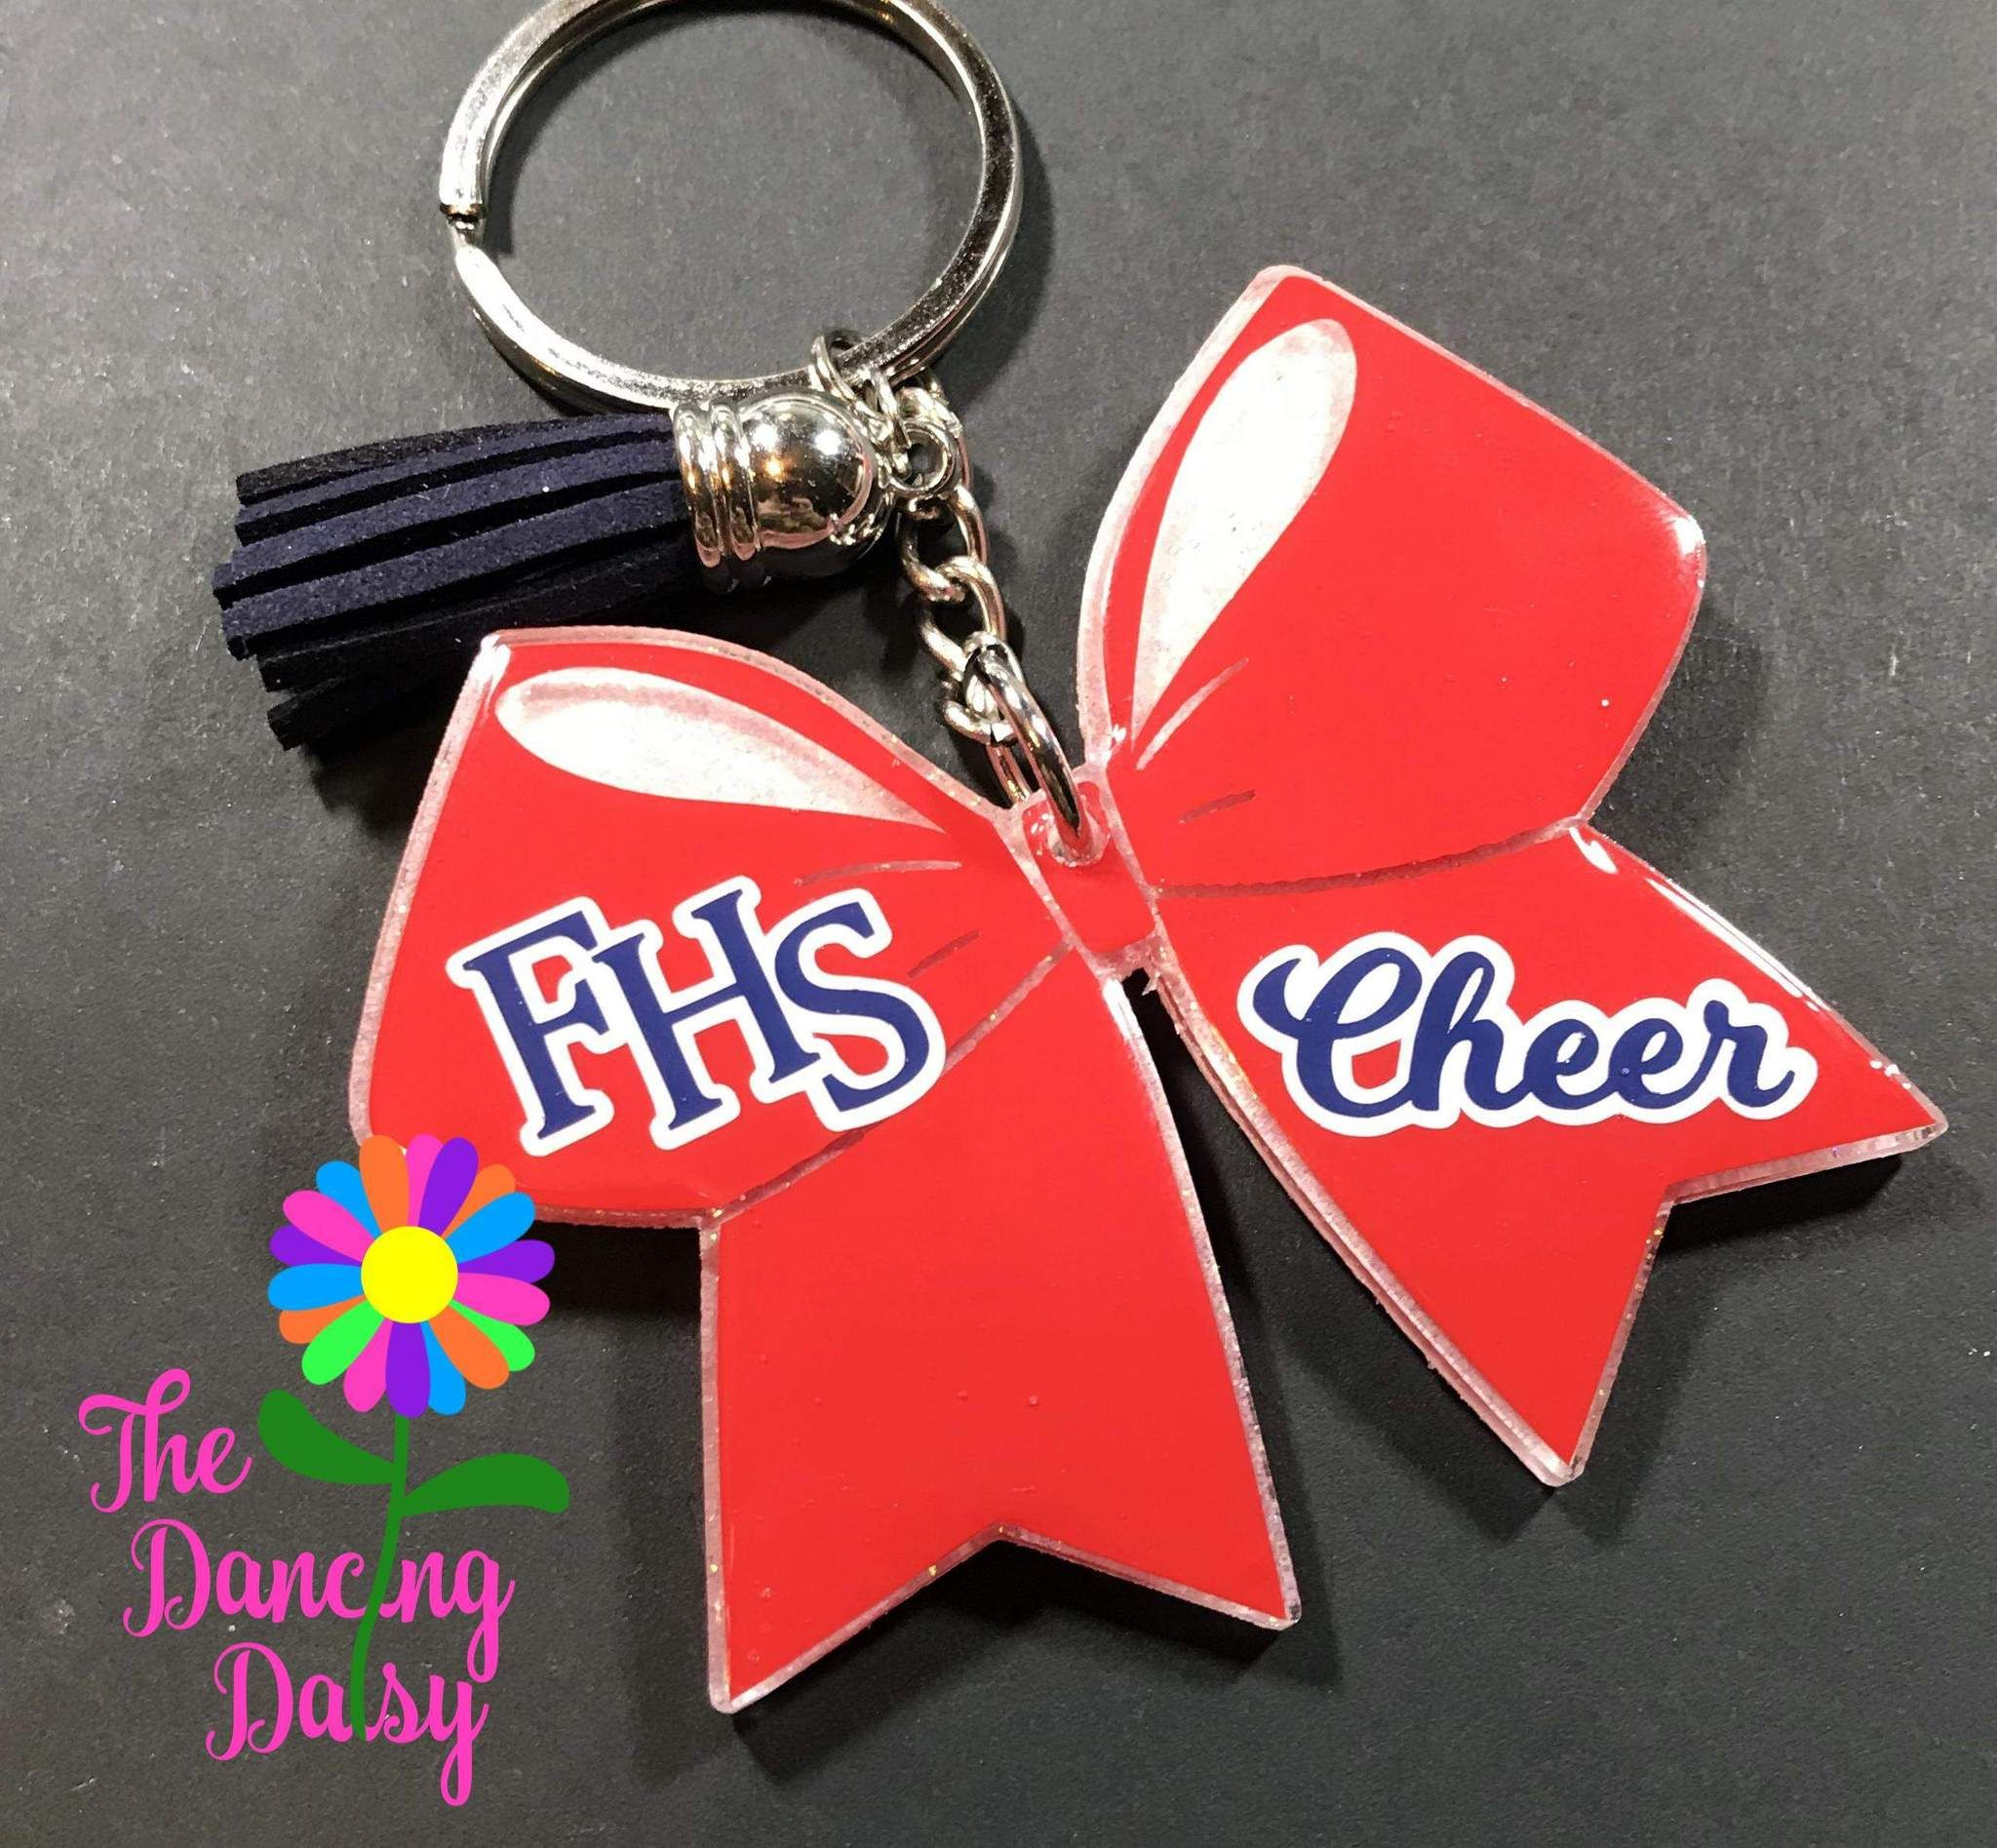 CHEERLEADER-RED Key Fobs really cute keychains